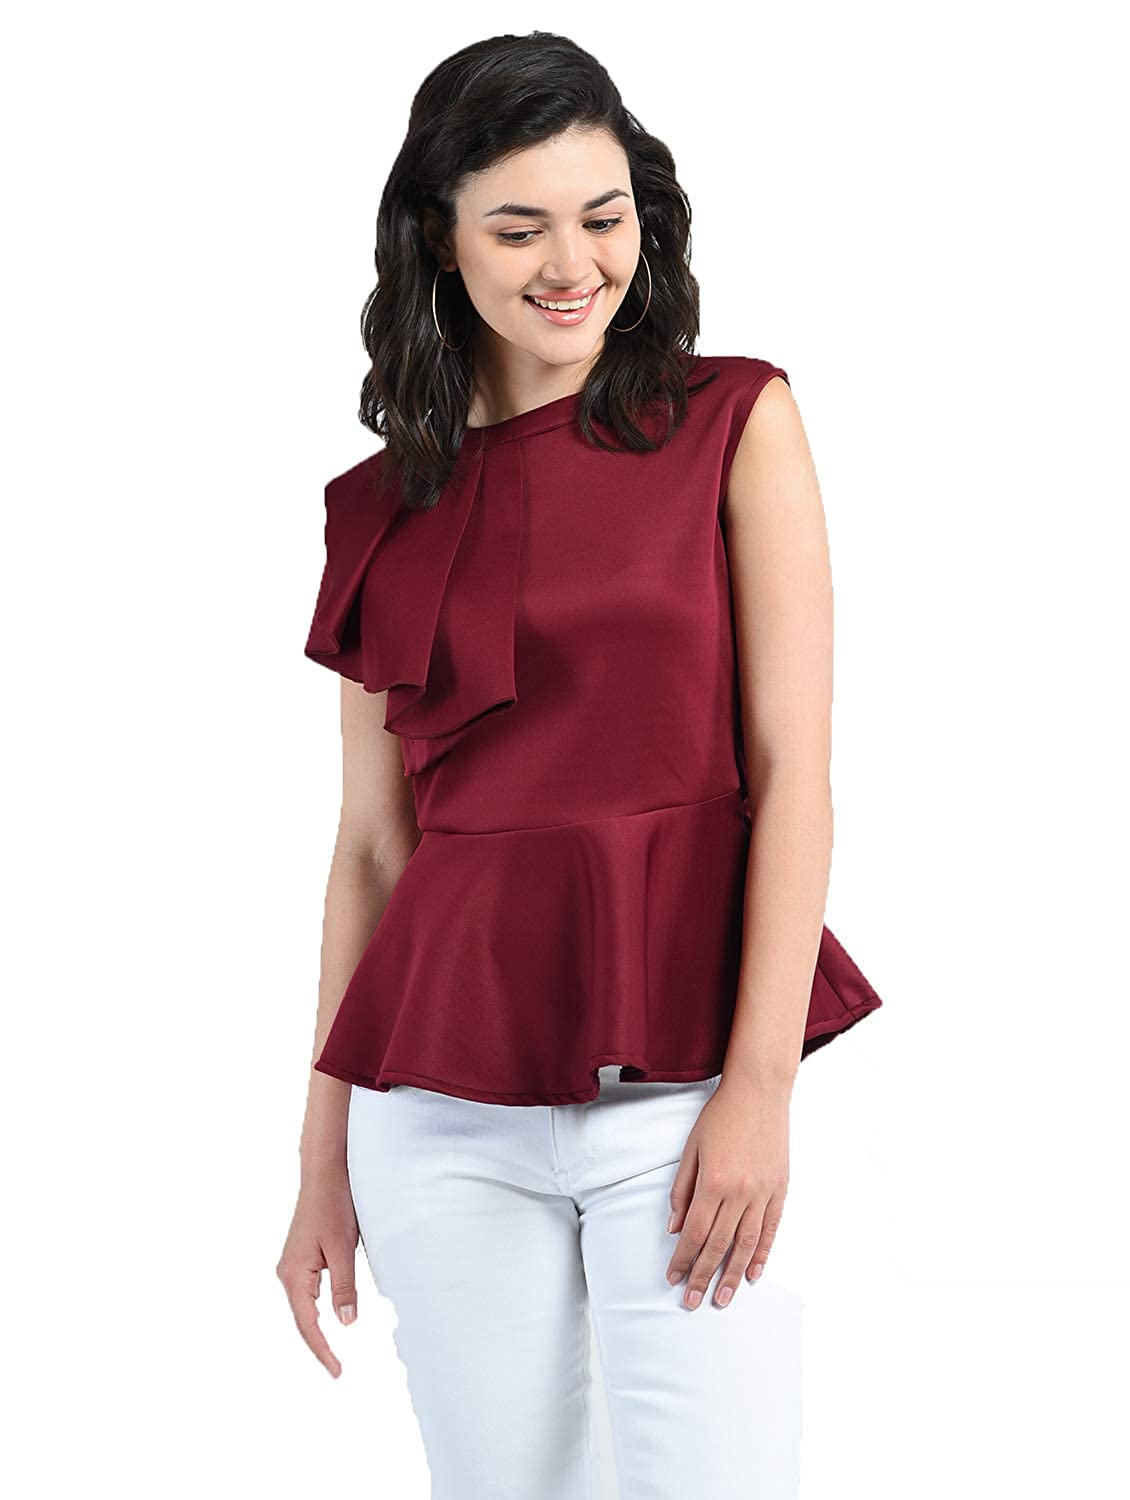 AARA Presents Stylish Maroon Solid Peplum Top/Shirt for Women's & Girl's with Round Neck and Sleeveless Top for Casual and Party Wear 20180008_Maroon